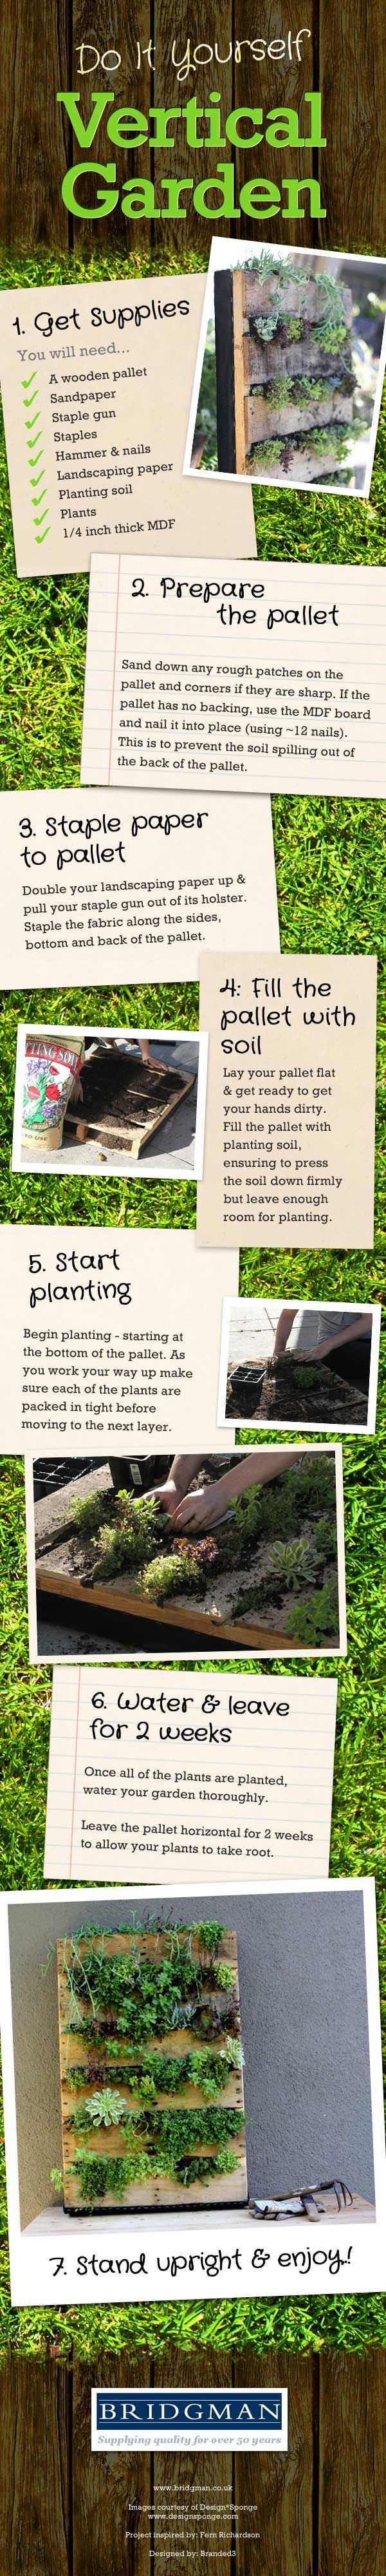 How to create a Vertical Wall Garden- I have to replace some old fencing this Spring! What an awesome idea!!! The best part, the pallets are Free!!! If it's free, it's for me!!!!!!!!!!!!